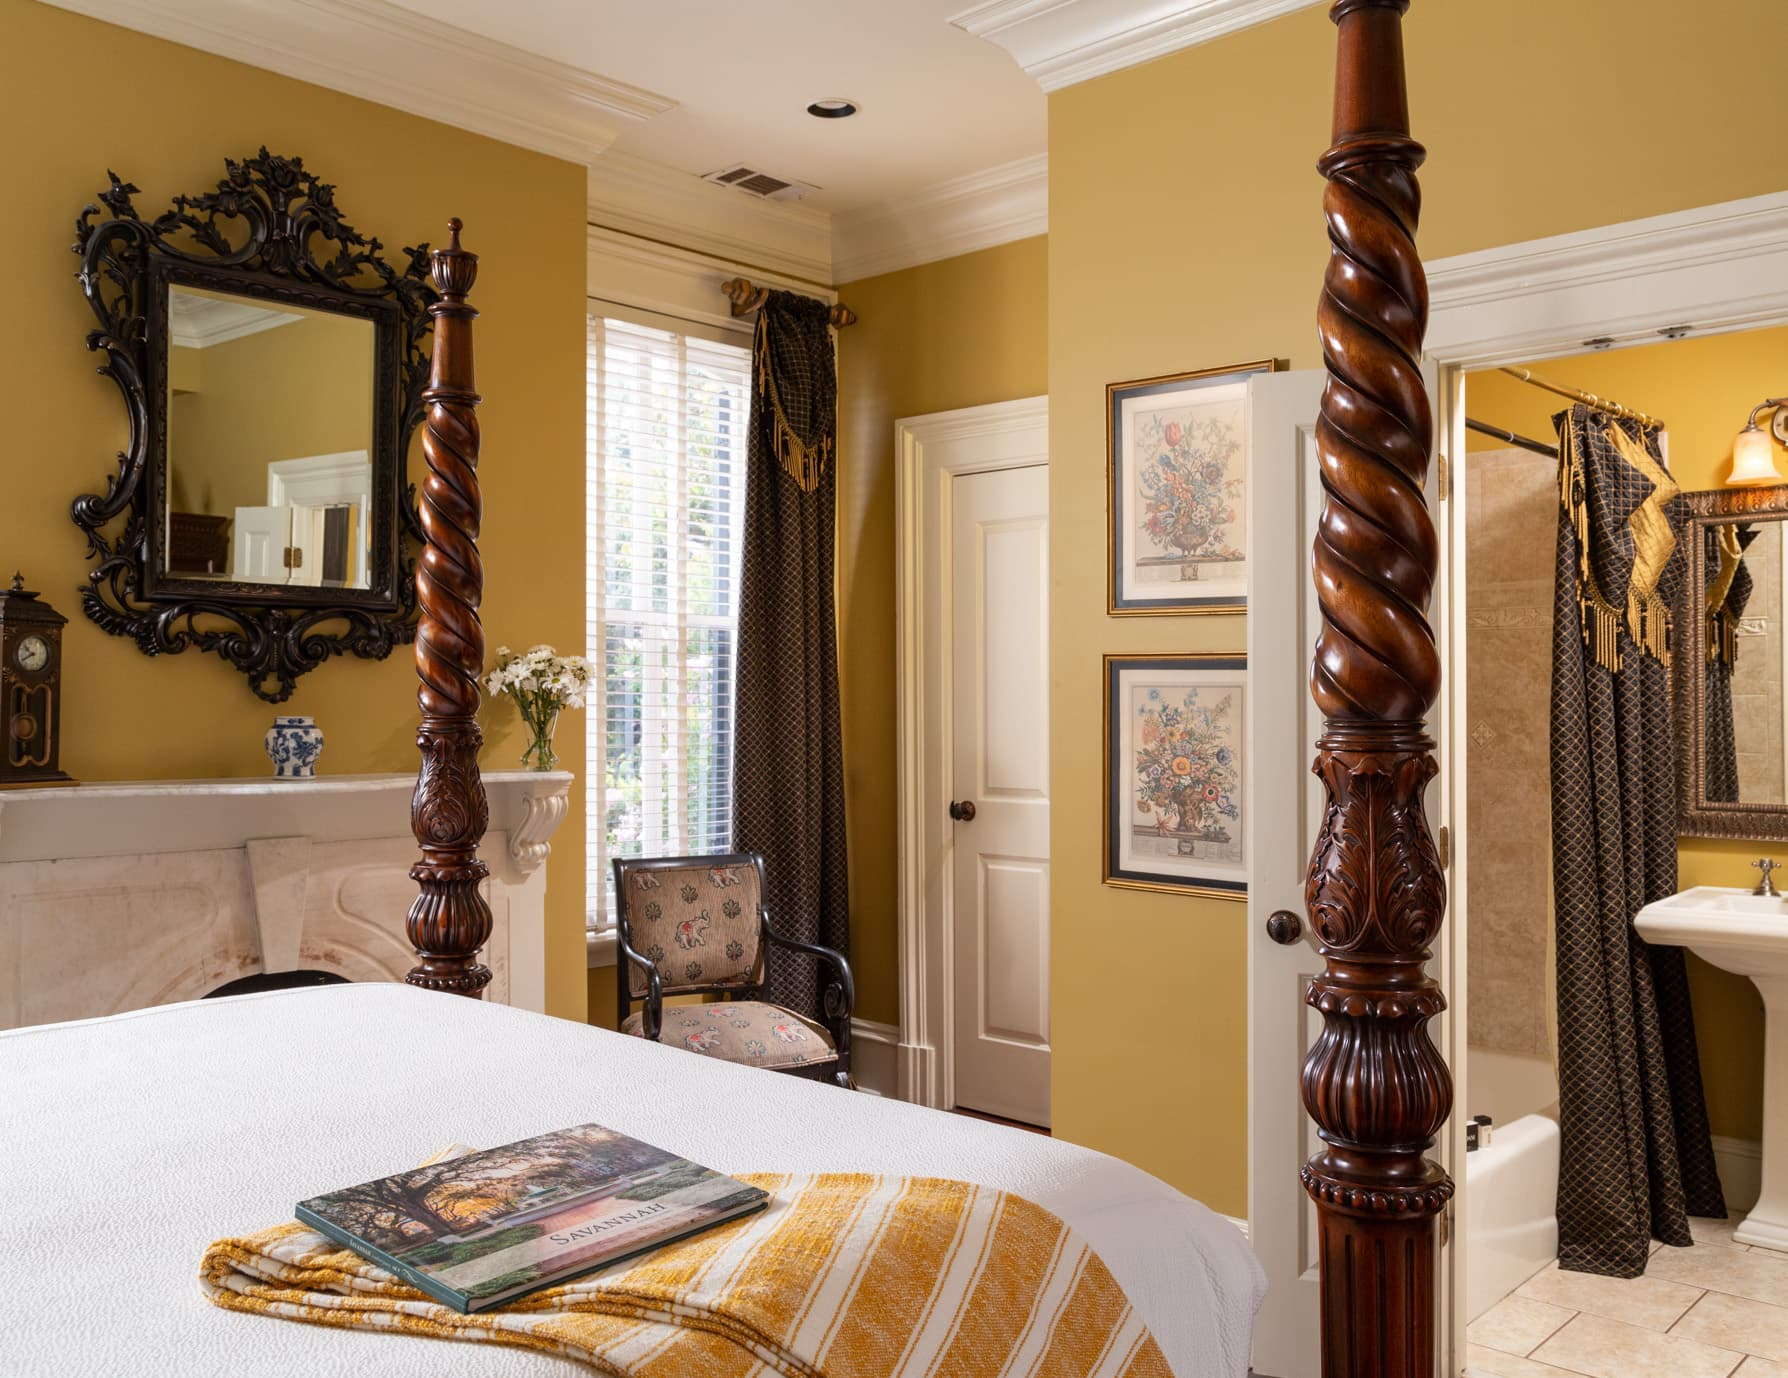 Foot of a queen bed with a view of the private bathroom